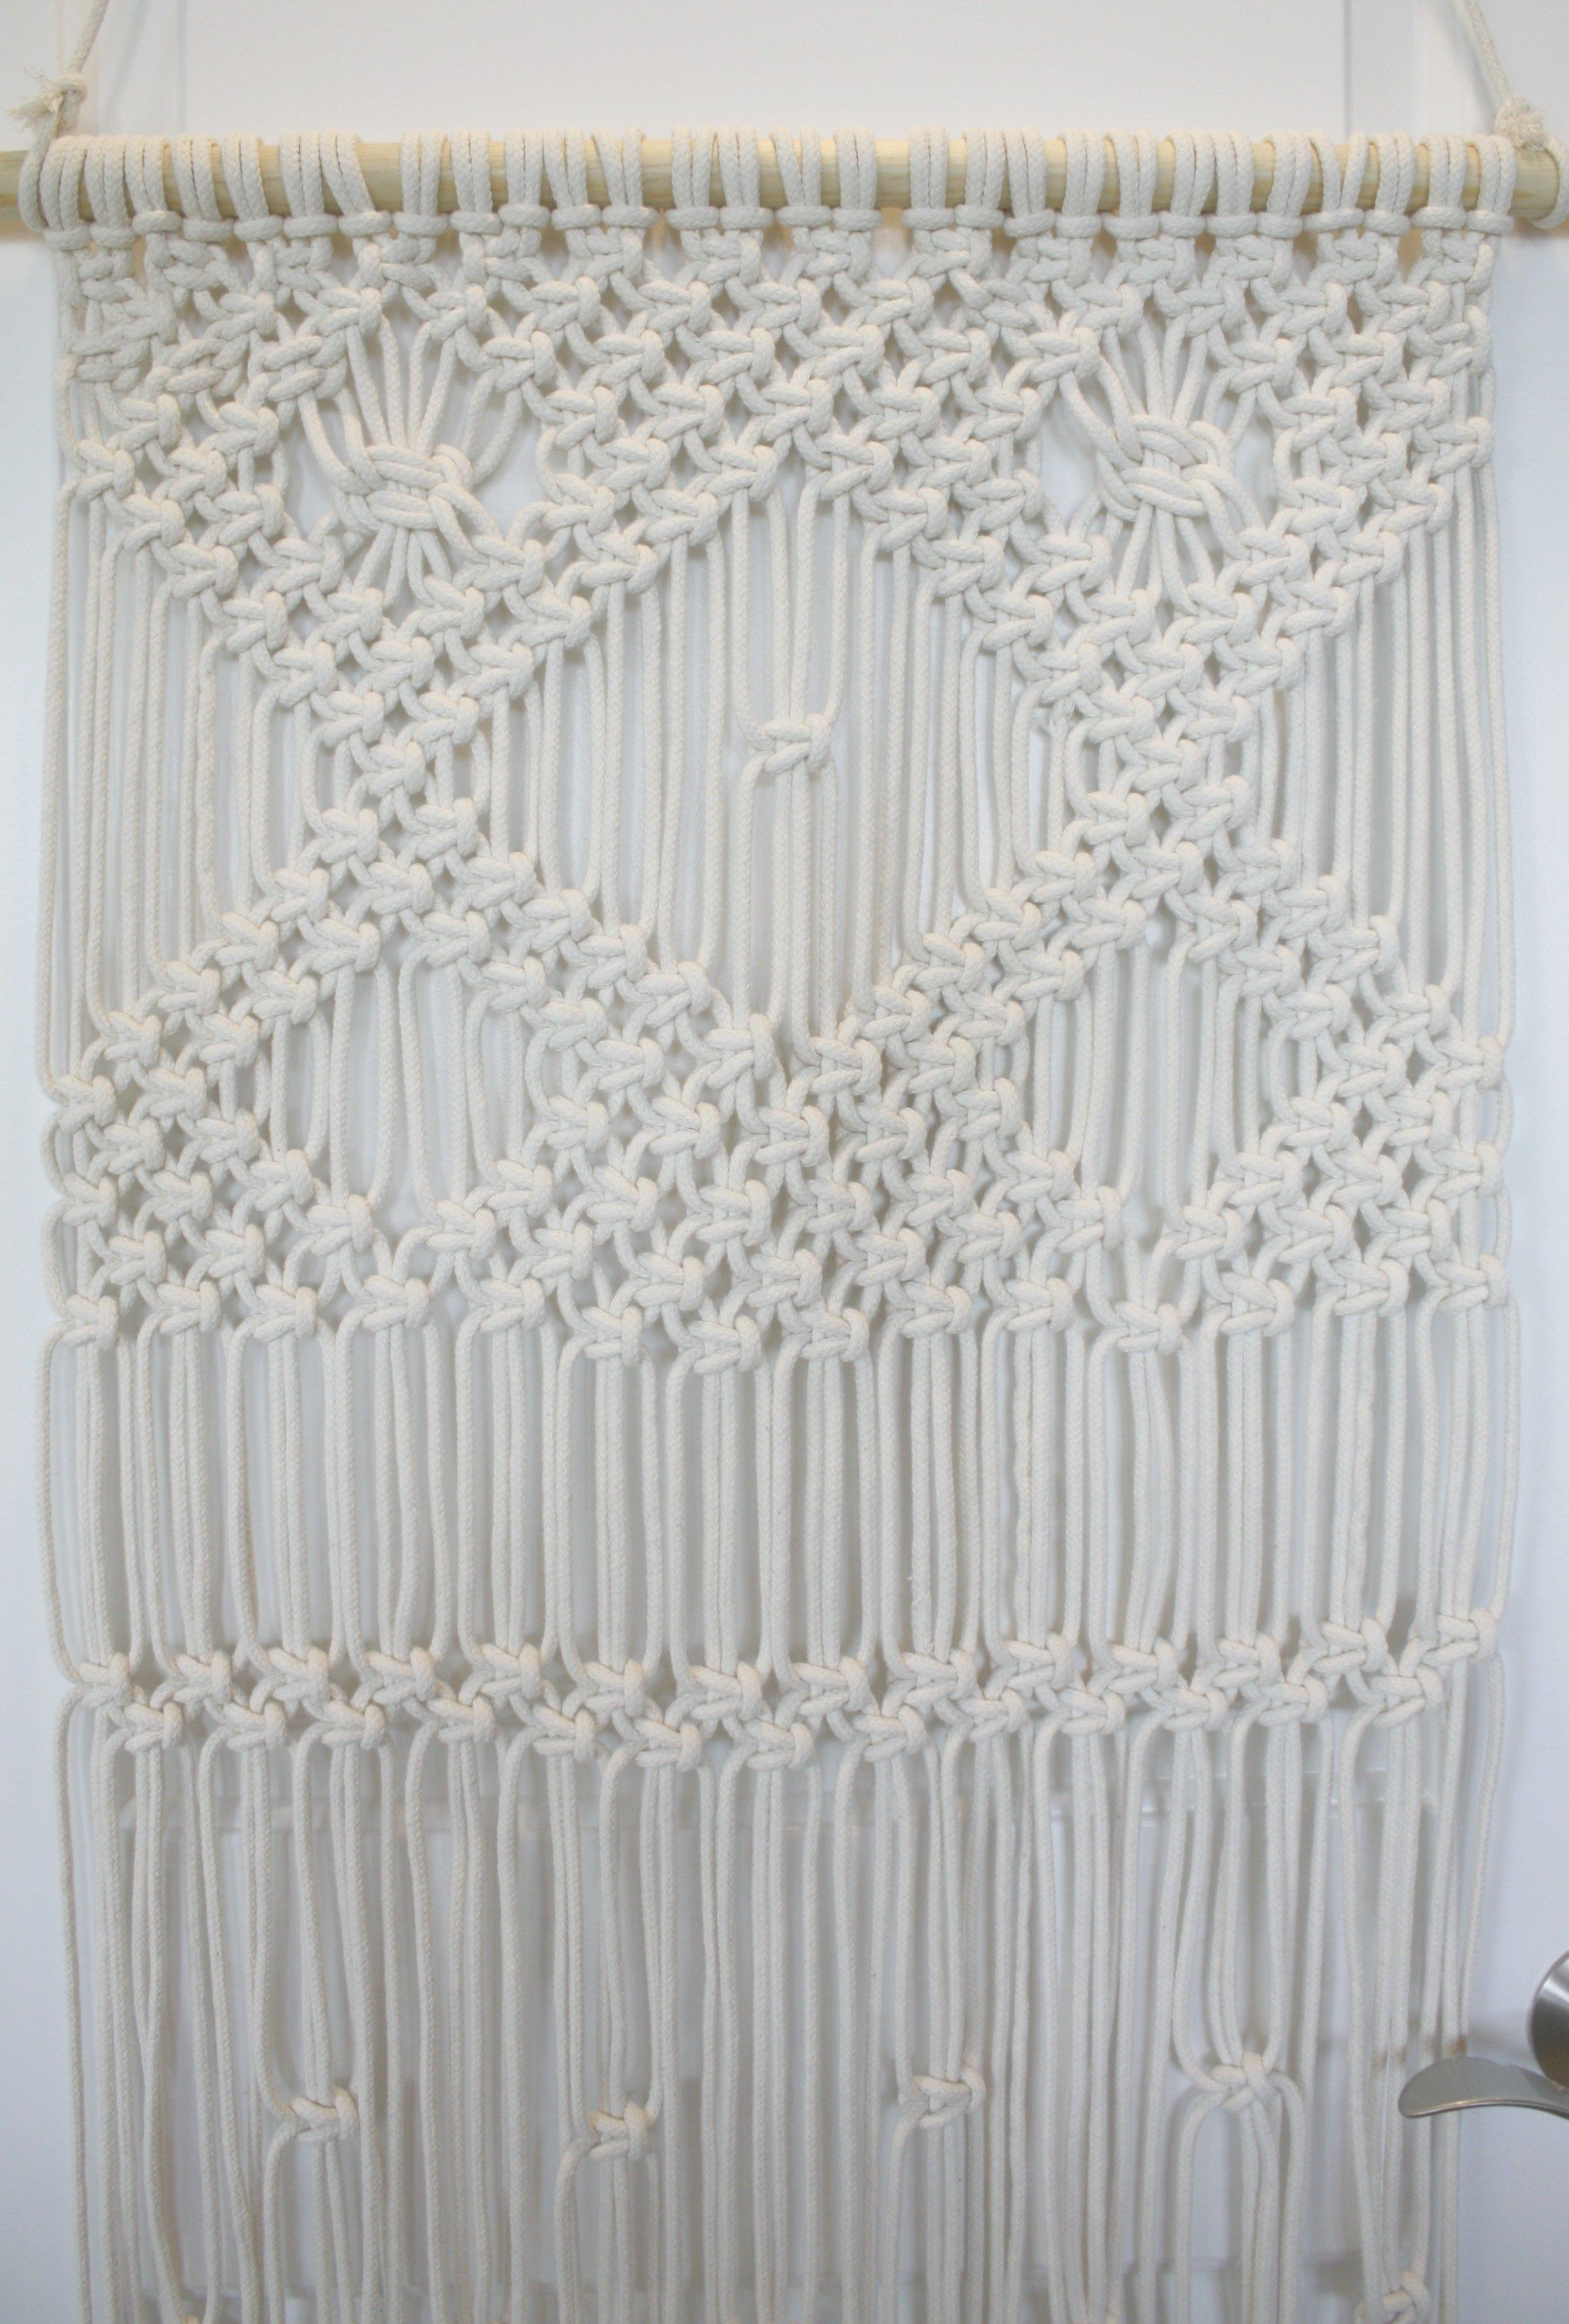 Macrame Wallhanging For Beginners With Images Macrame Wall